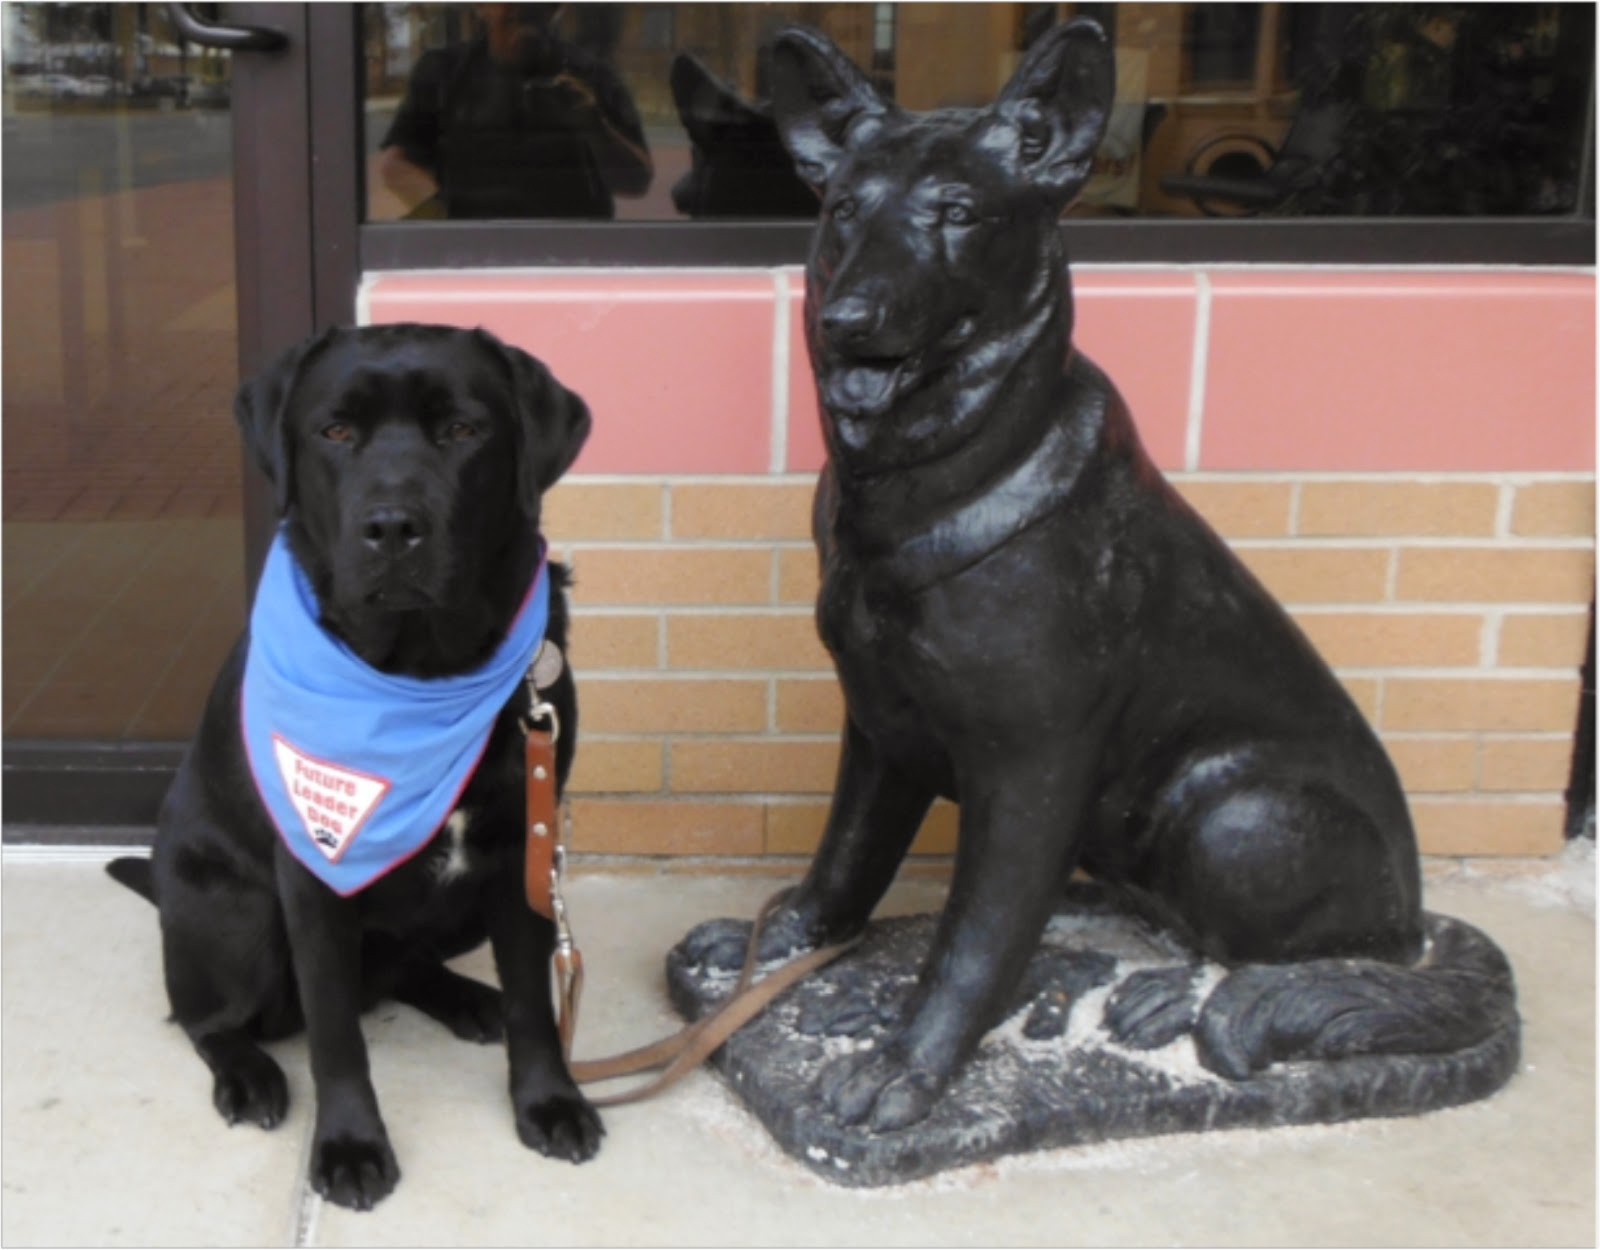 On the left, a black lab, wearing the blue Future Leader Dog bandana sits next to a stature of a german shepherd, facing the camera. The dog statue is all black and the dog is in a sitting position. The lab's leash is looped around the statue's front leg. There is a brick wall below a window behind them.